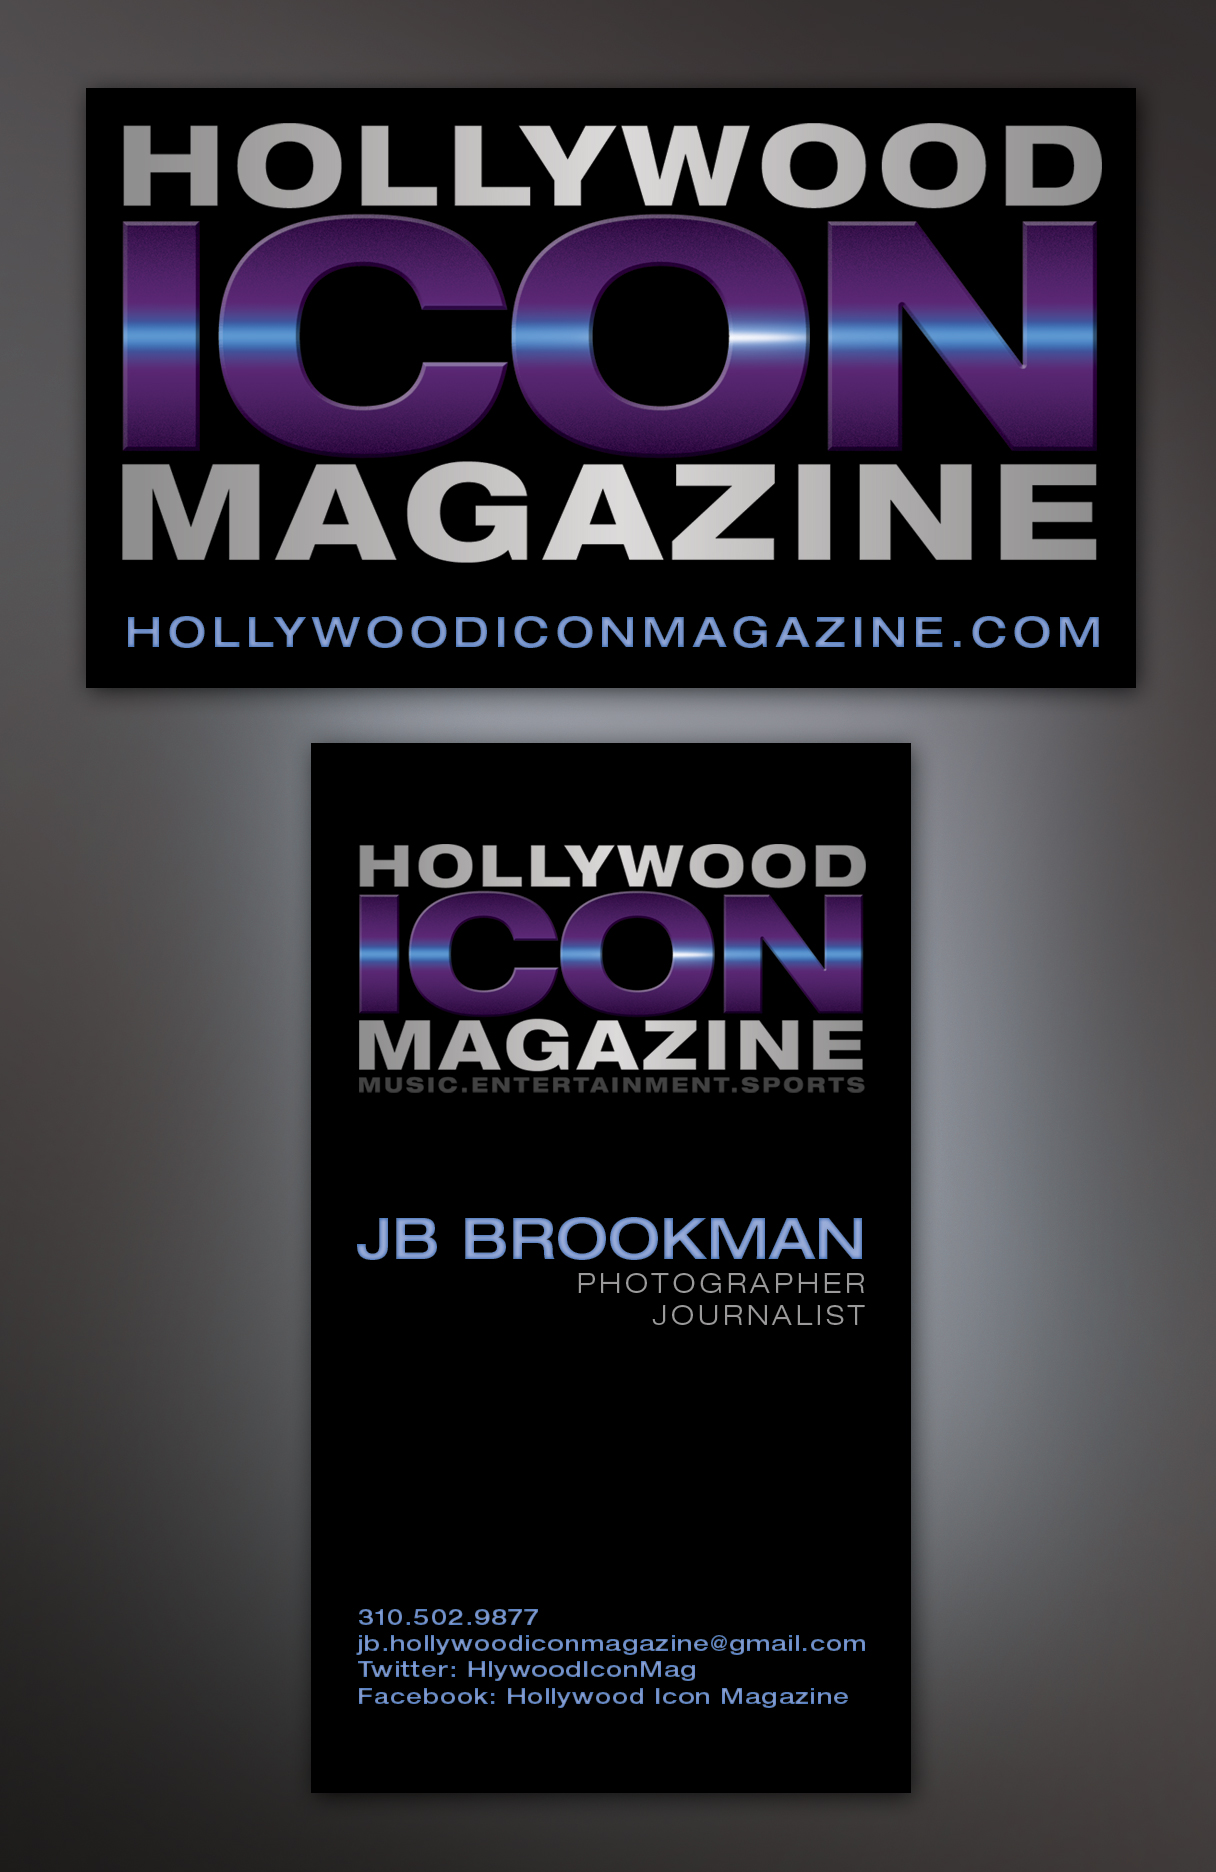 Hollywood icon magazine business card design by jen brookman jb at hollywood icon magazine just received his business cards in the mail which i designed for him last friday its fun to see your marketing concepts colourmoves